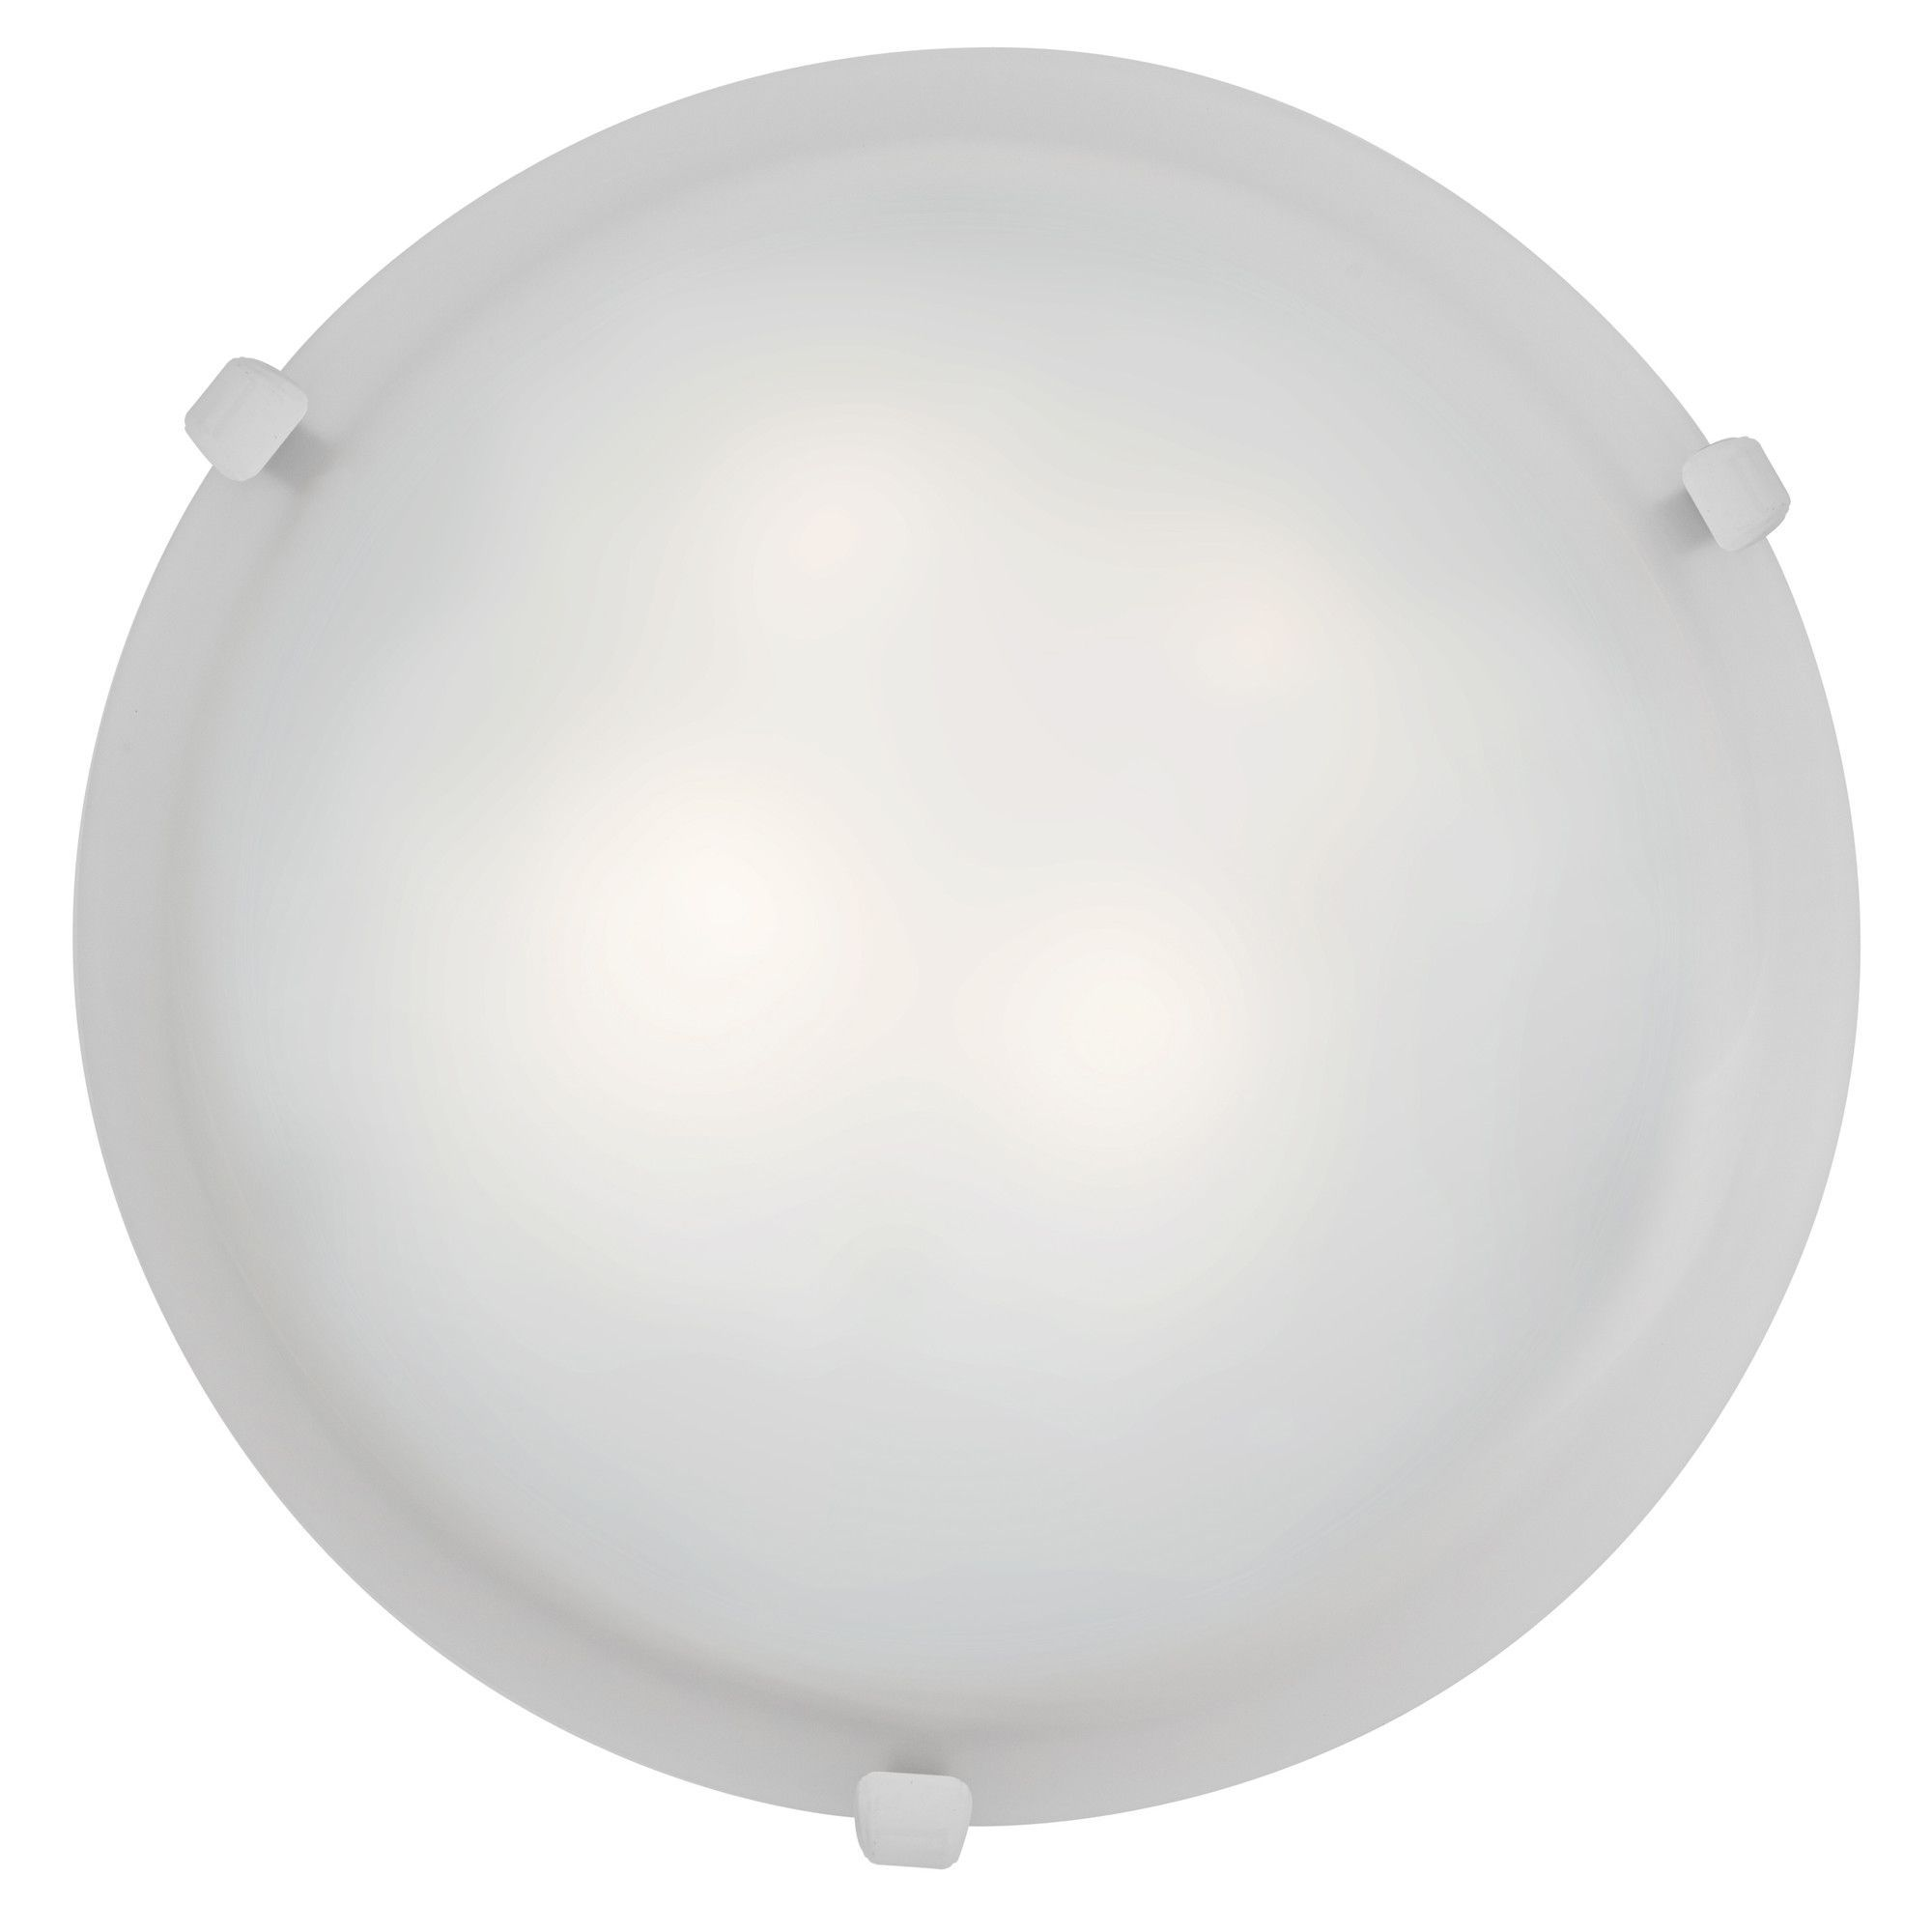 Mona 1 Light Wall/Flush Mount | Products | Pinterest | Ceiling ...